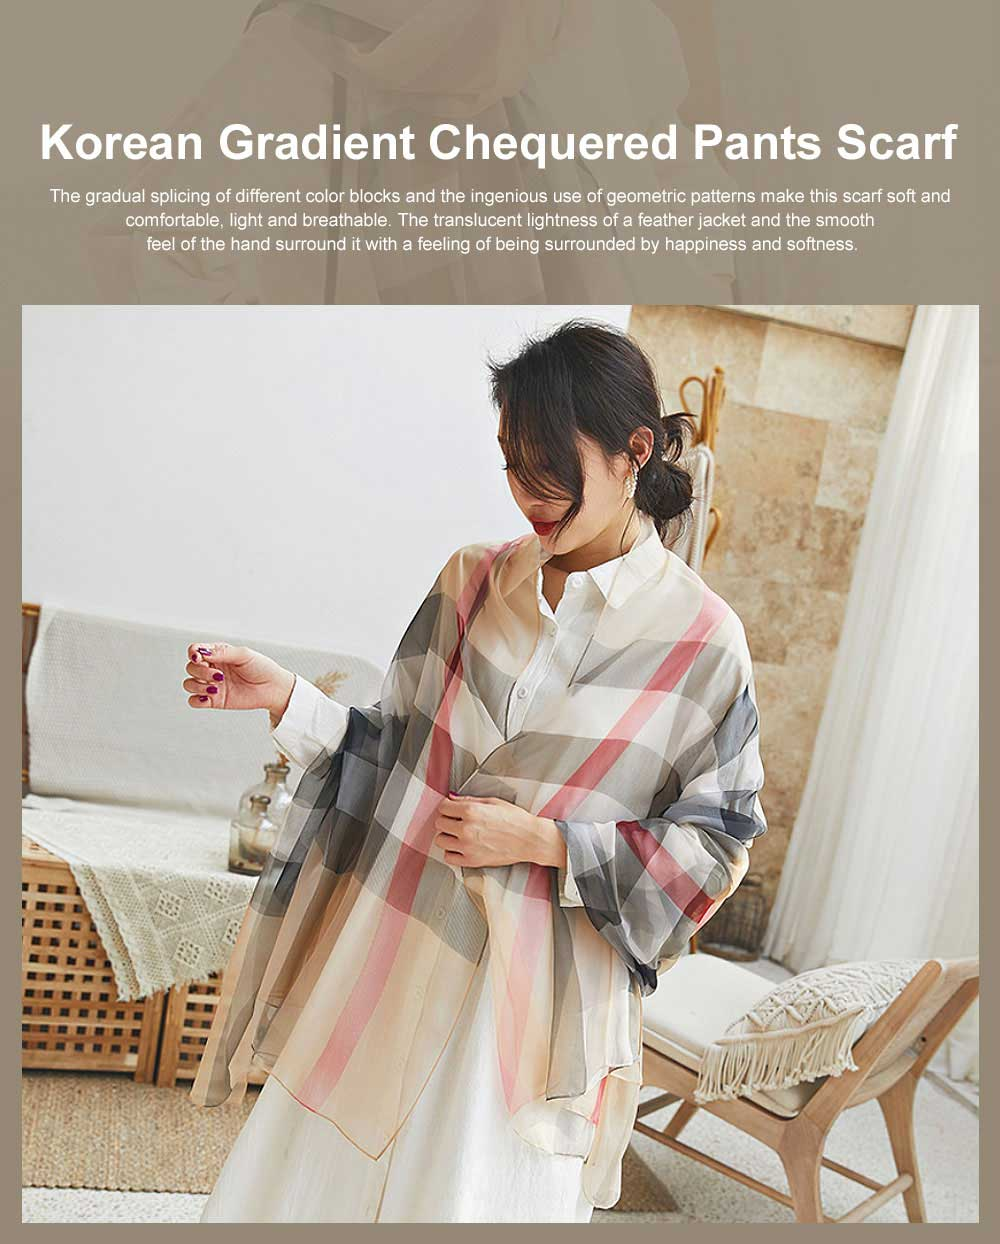 2019 Hot Gradient Grid Pants Scarf, New Sunscreen Scarf Shawl in Spring and Summer for Girl Lady 0